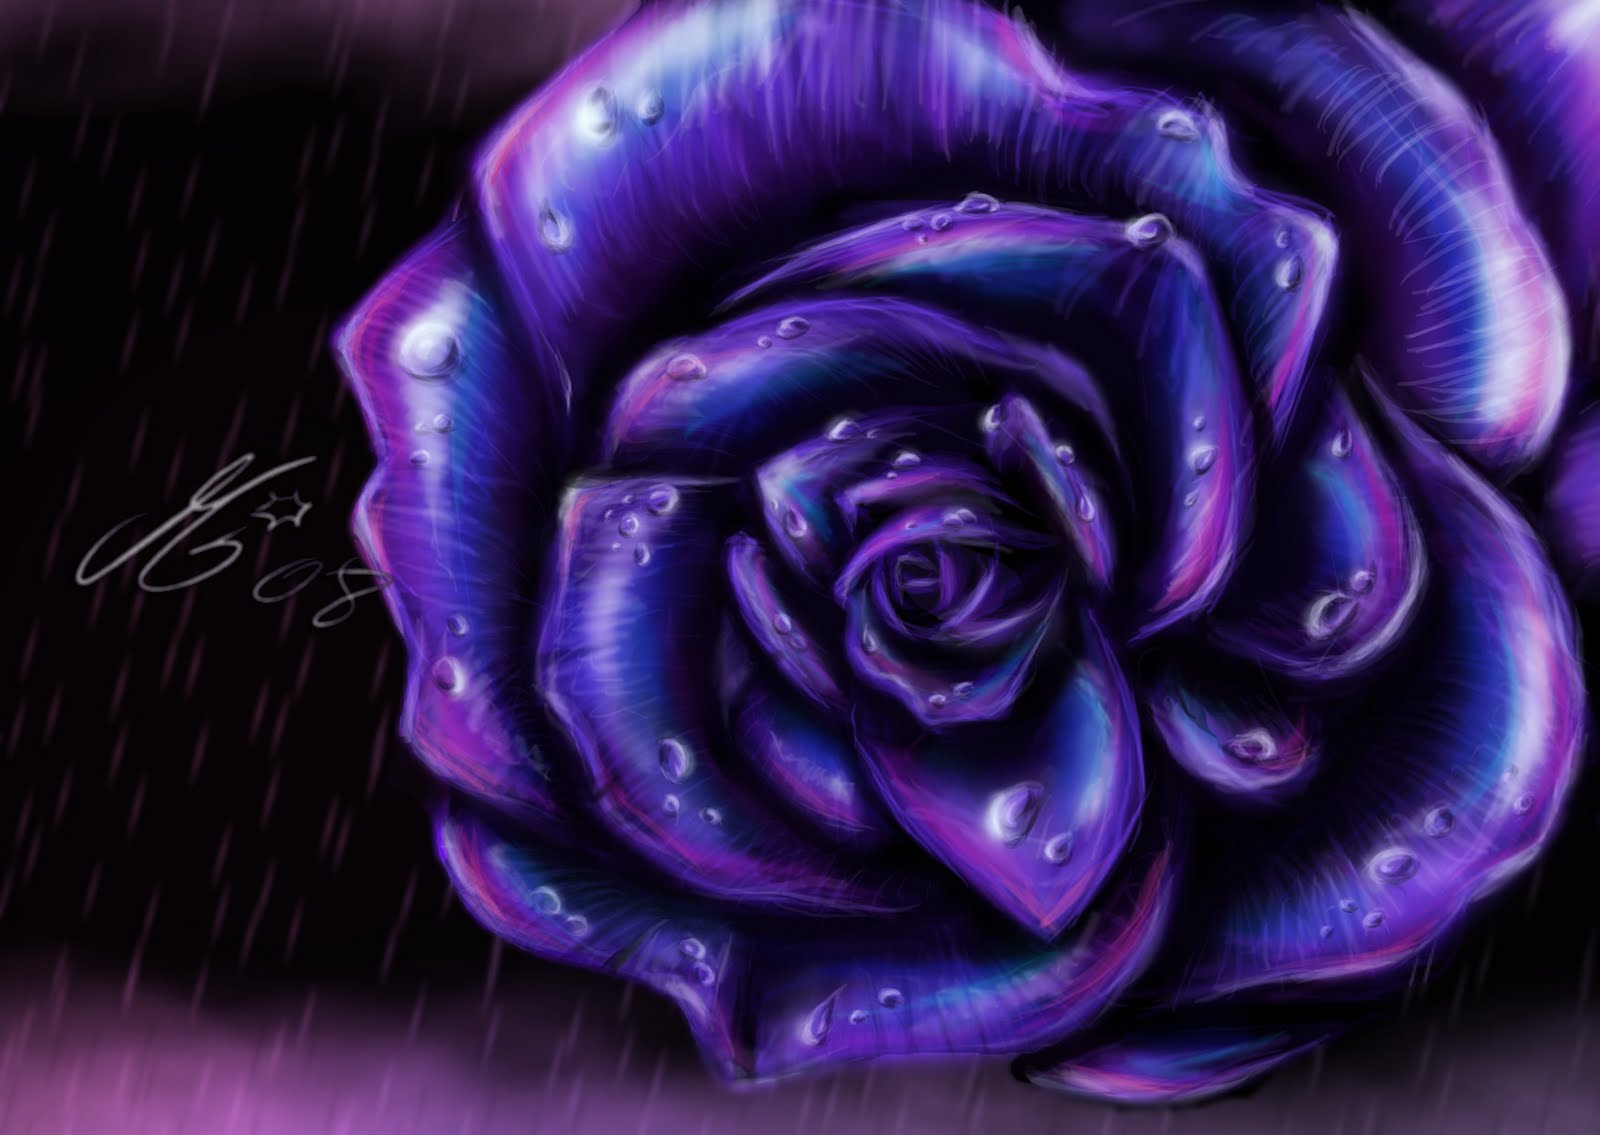 wallpapers of purple roses - photo #5